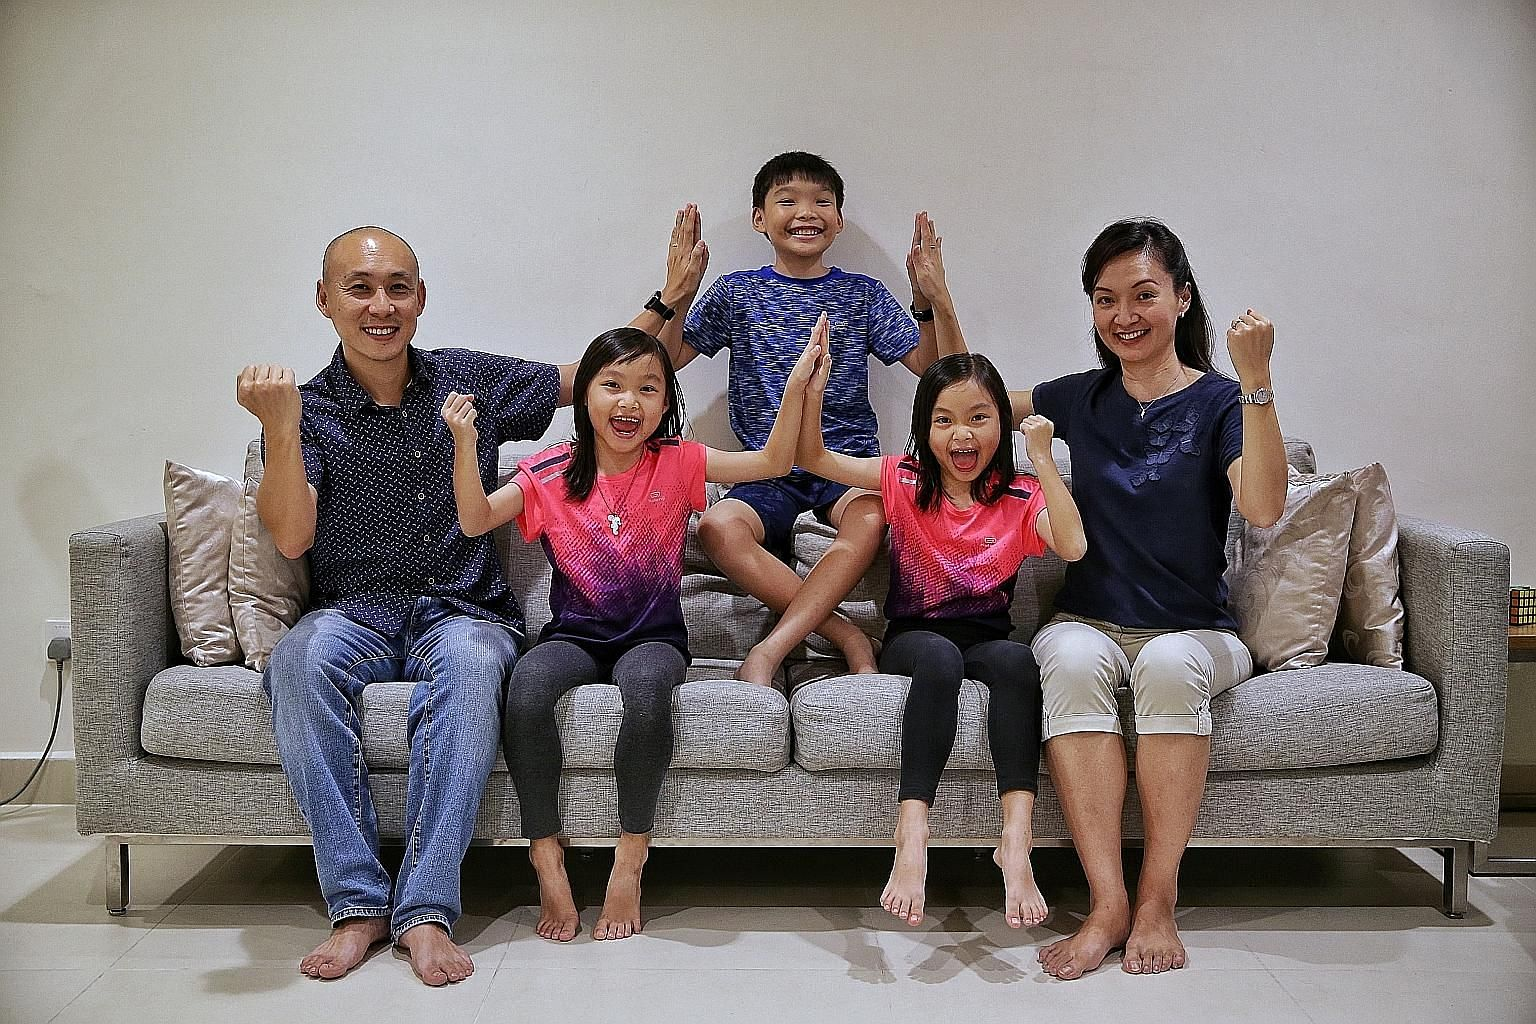 The New family - Mr Norman New, his wife Lim Li, and their son Nathan and twin daughters Shania (left) and Shavon - followed a series of eco-friendly living tips over seven days, such as using handkerchiefs instead of tissue paper and switching to ba